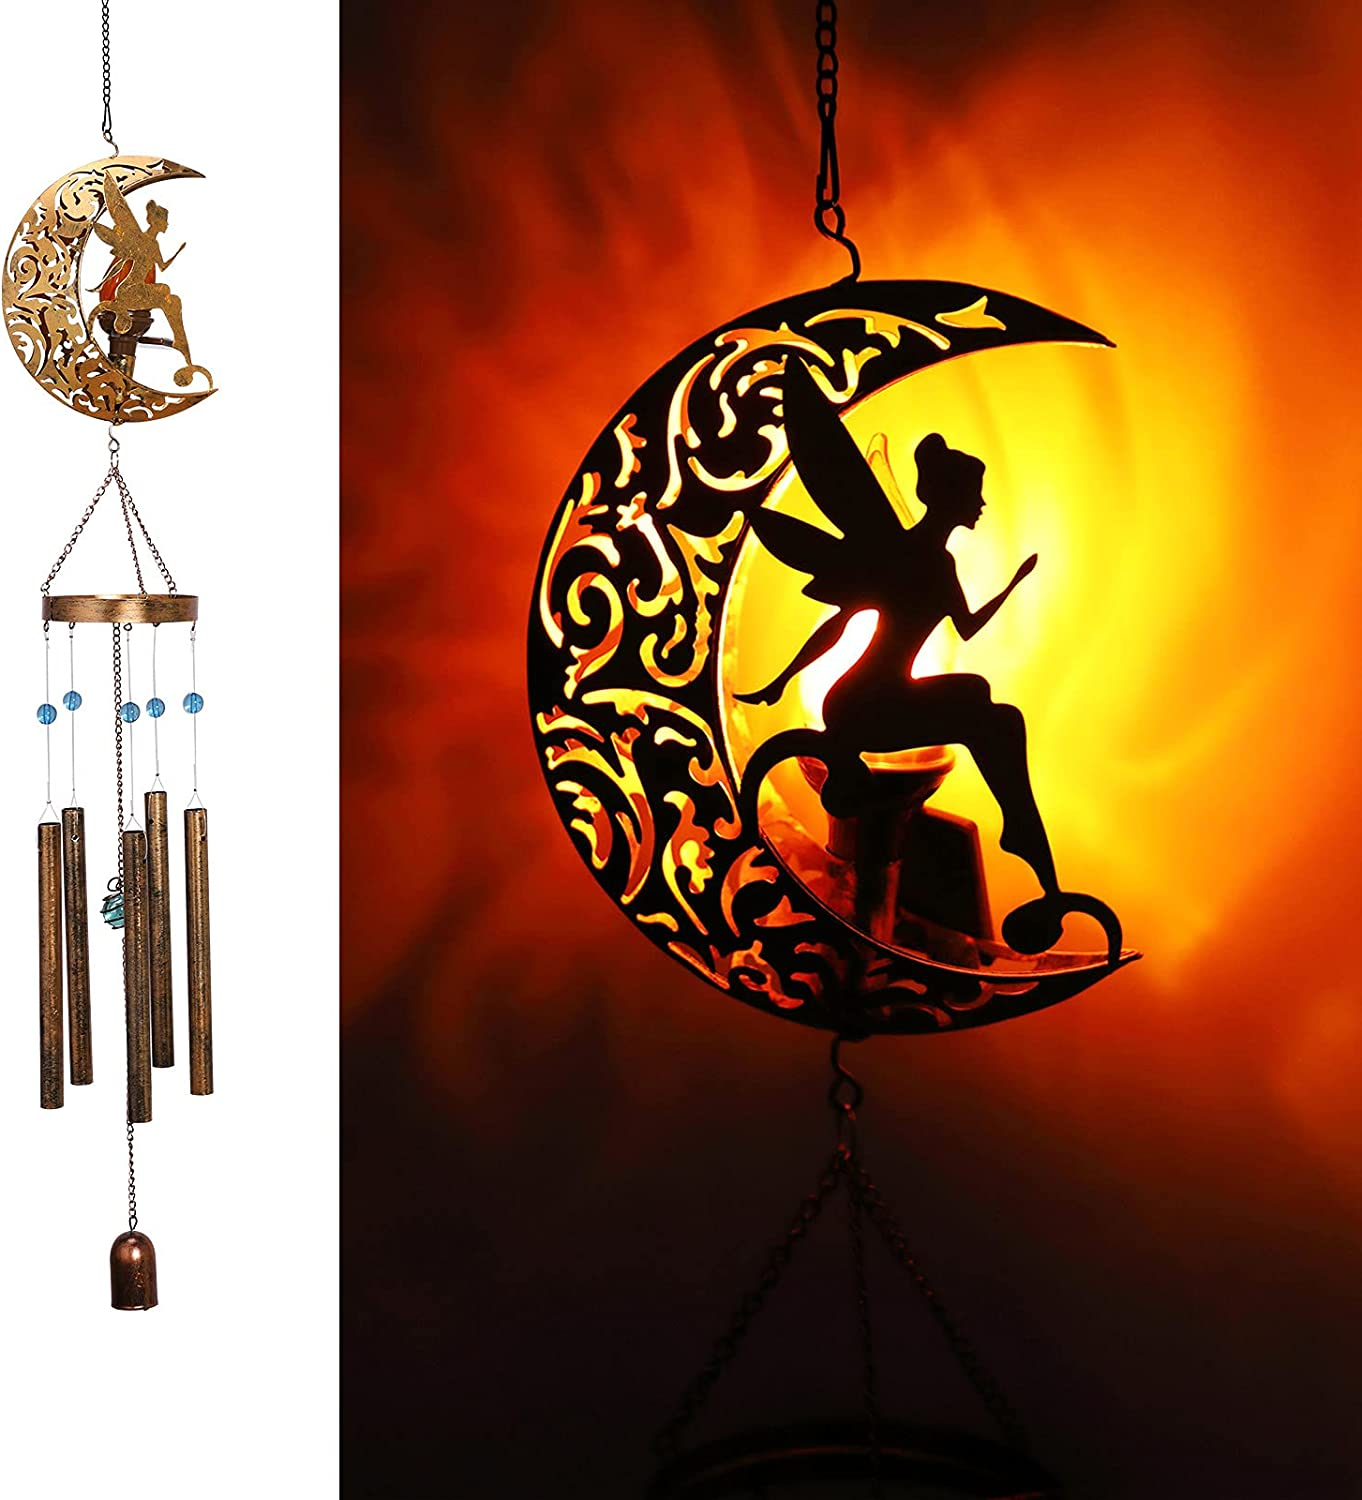 YJFWAL Moon Wind Chimes,Solar Fairy Moon Lights Solar Wind Chimes with Angel Decor Outdoor for Garden, Sympathy Gift, Gifts for Mom, Gifts for Grandma, Mom Gifts, Memorial Wind Chime